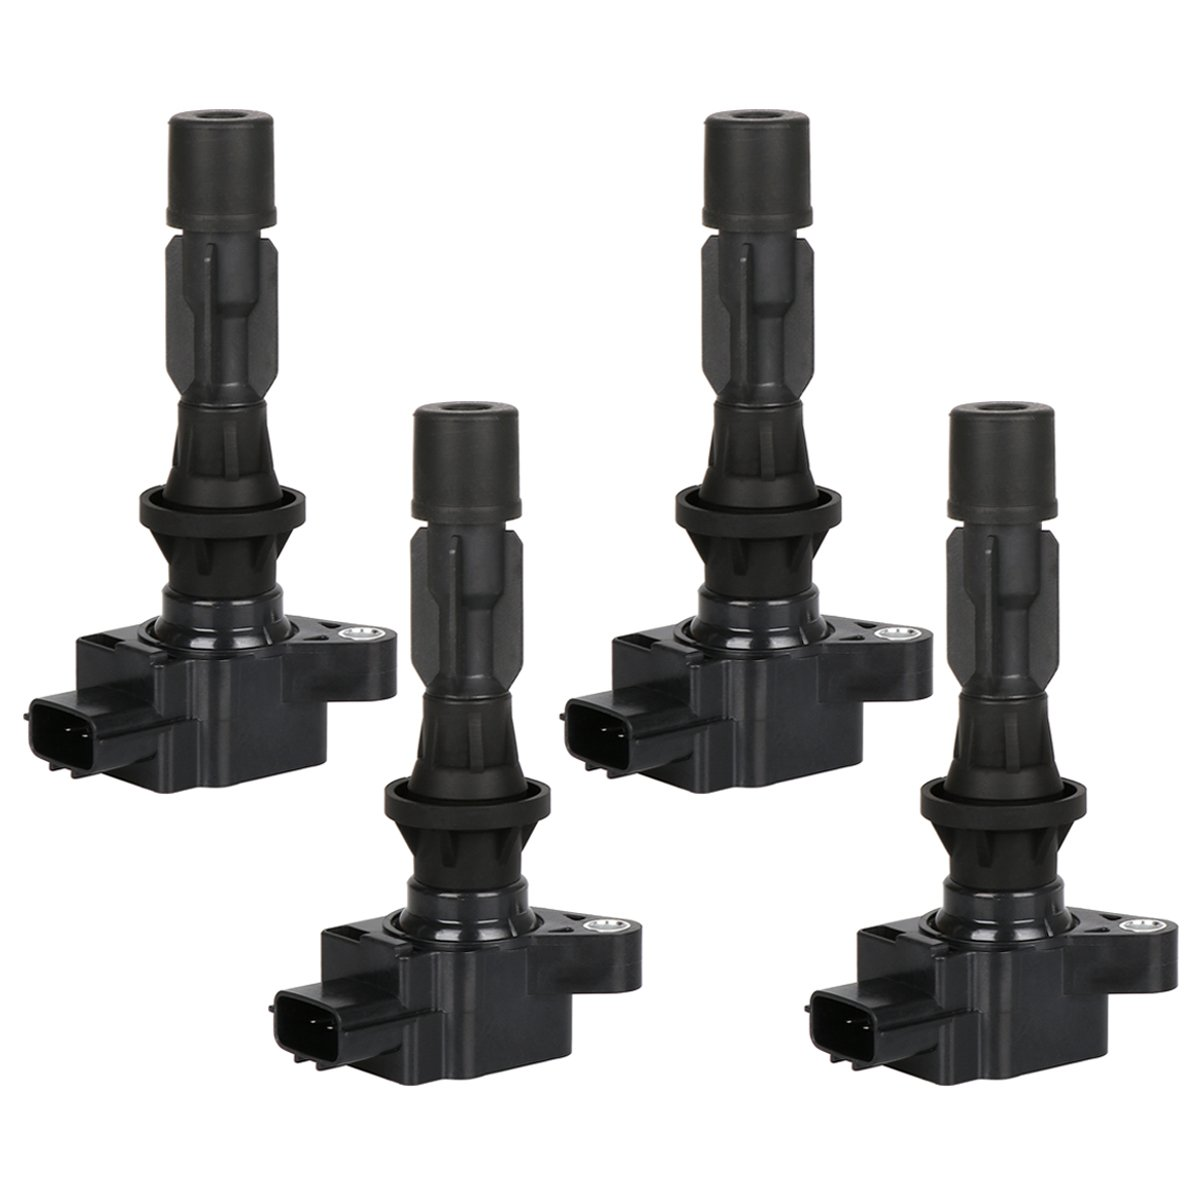 FAERSI Ignition Coil Pack of 4 Replaces OE# UF540 L3G218100A for L4-2006-2013 Mazda 3 2006-2013 Mazda 6 2007-2012 Mazda CX-7 2006-2015 Mazda MX-5 Miata -2 Yr Warranty by FAERSI